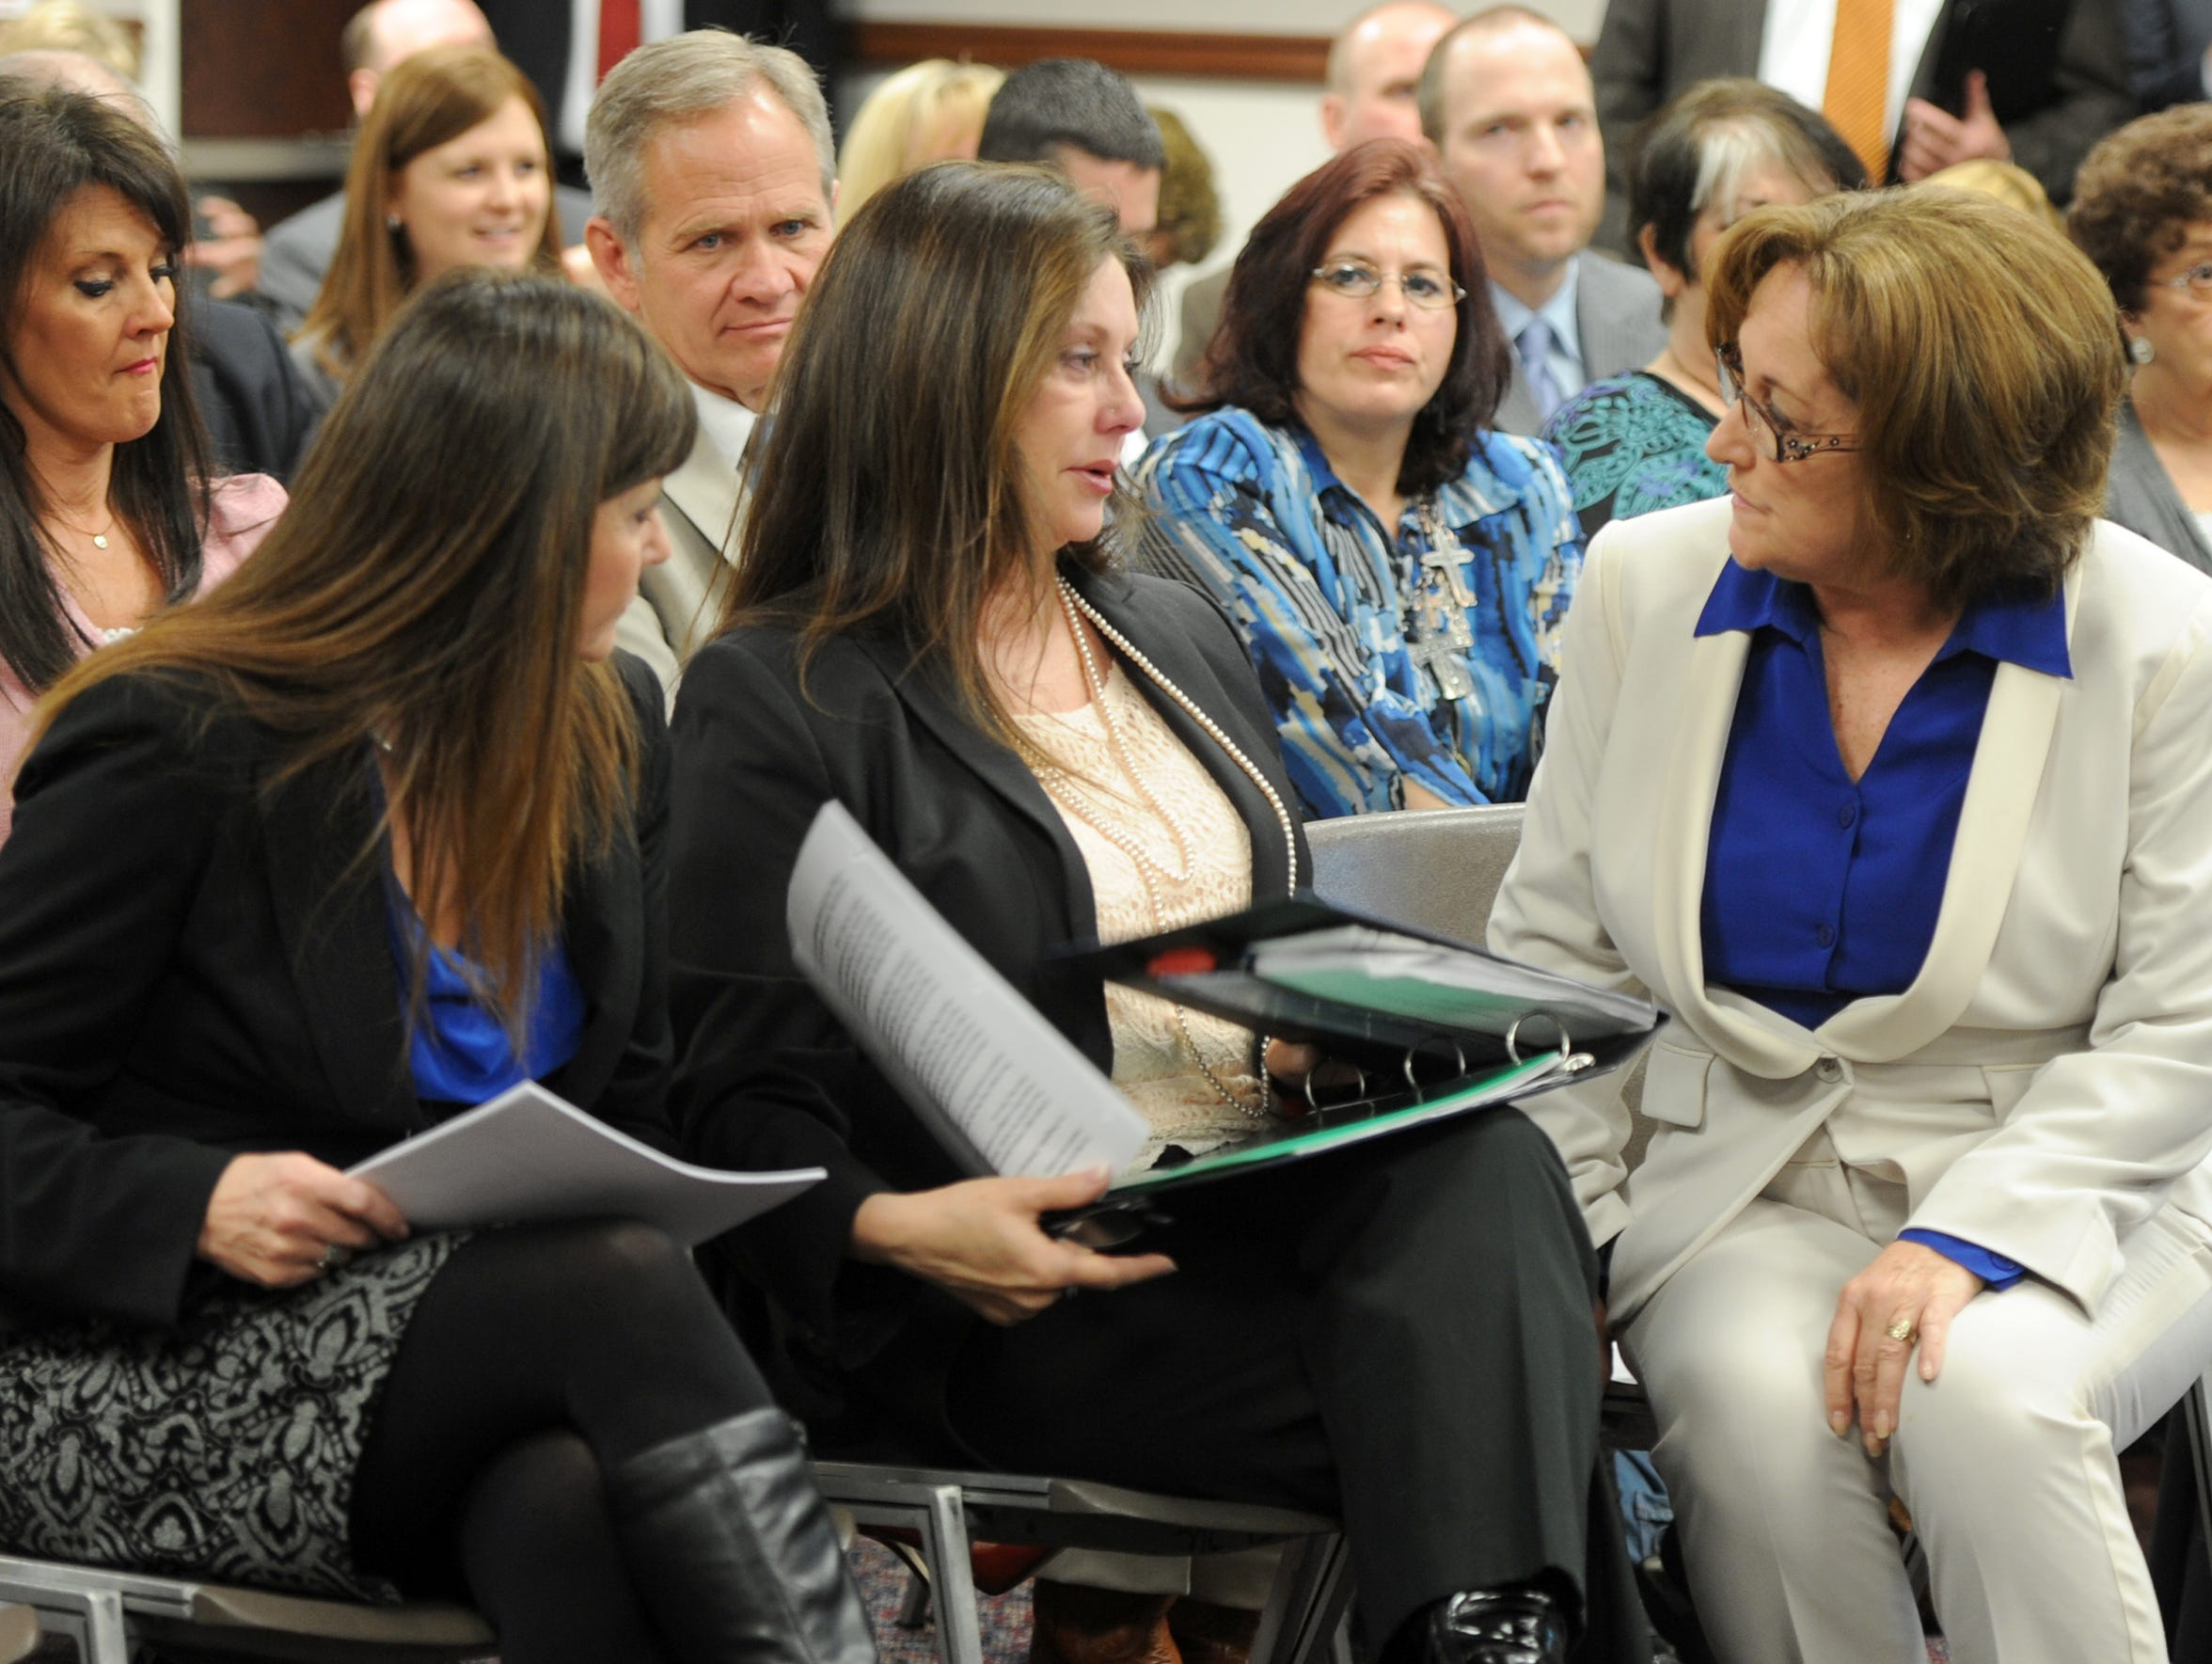 Jayann Sepich, left, and Bridgette Denison talk with Sen. Debbie Smith, right, before the judiciary hearing March 14, 2013. Smith sponsored the bill known as Brianna's Law.